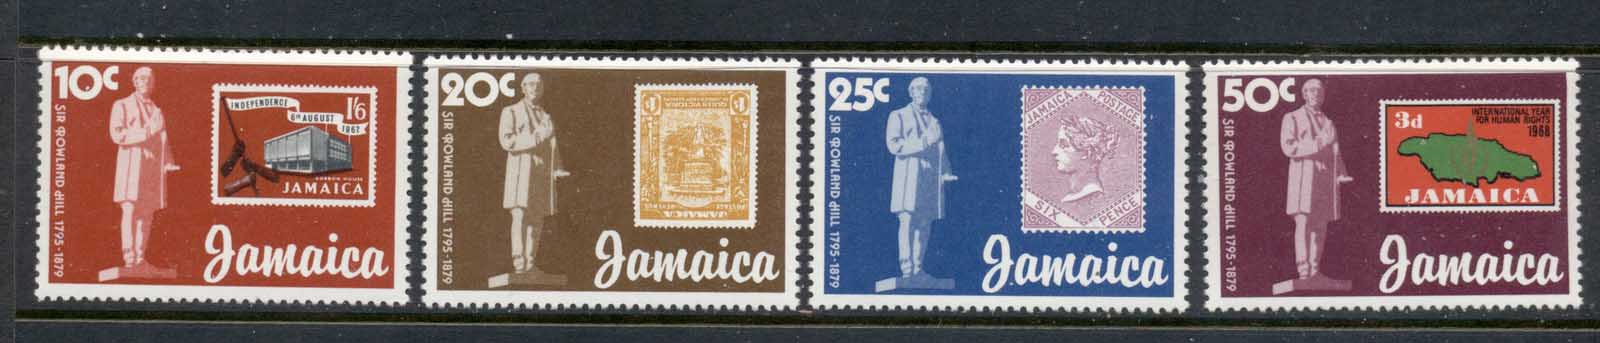 Jamaica 1979 Sir Rowland Hill Death Centenary MUH